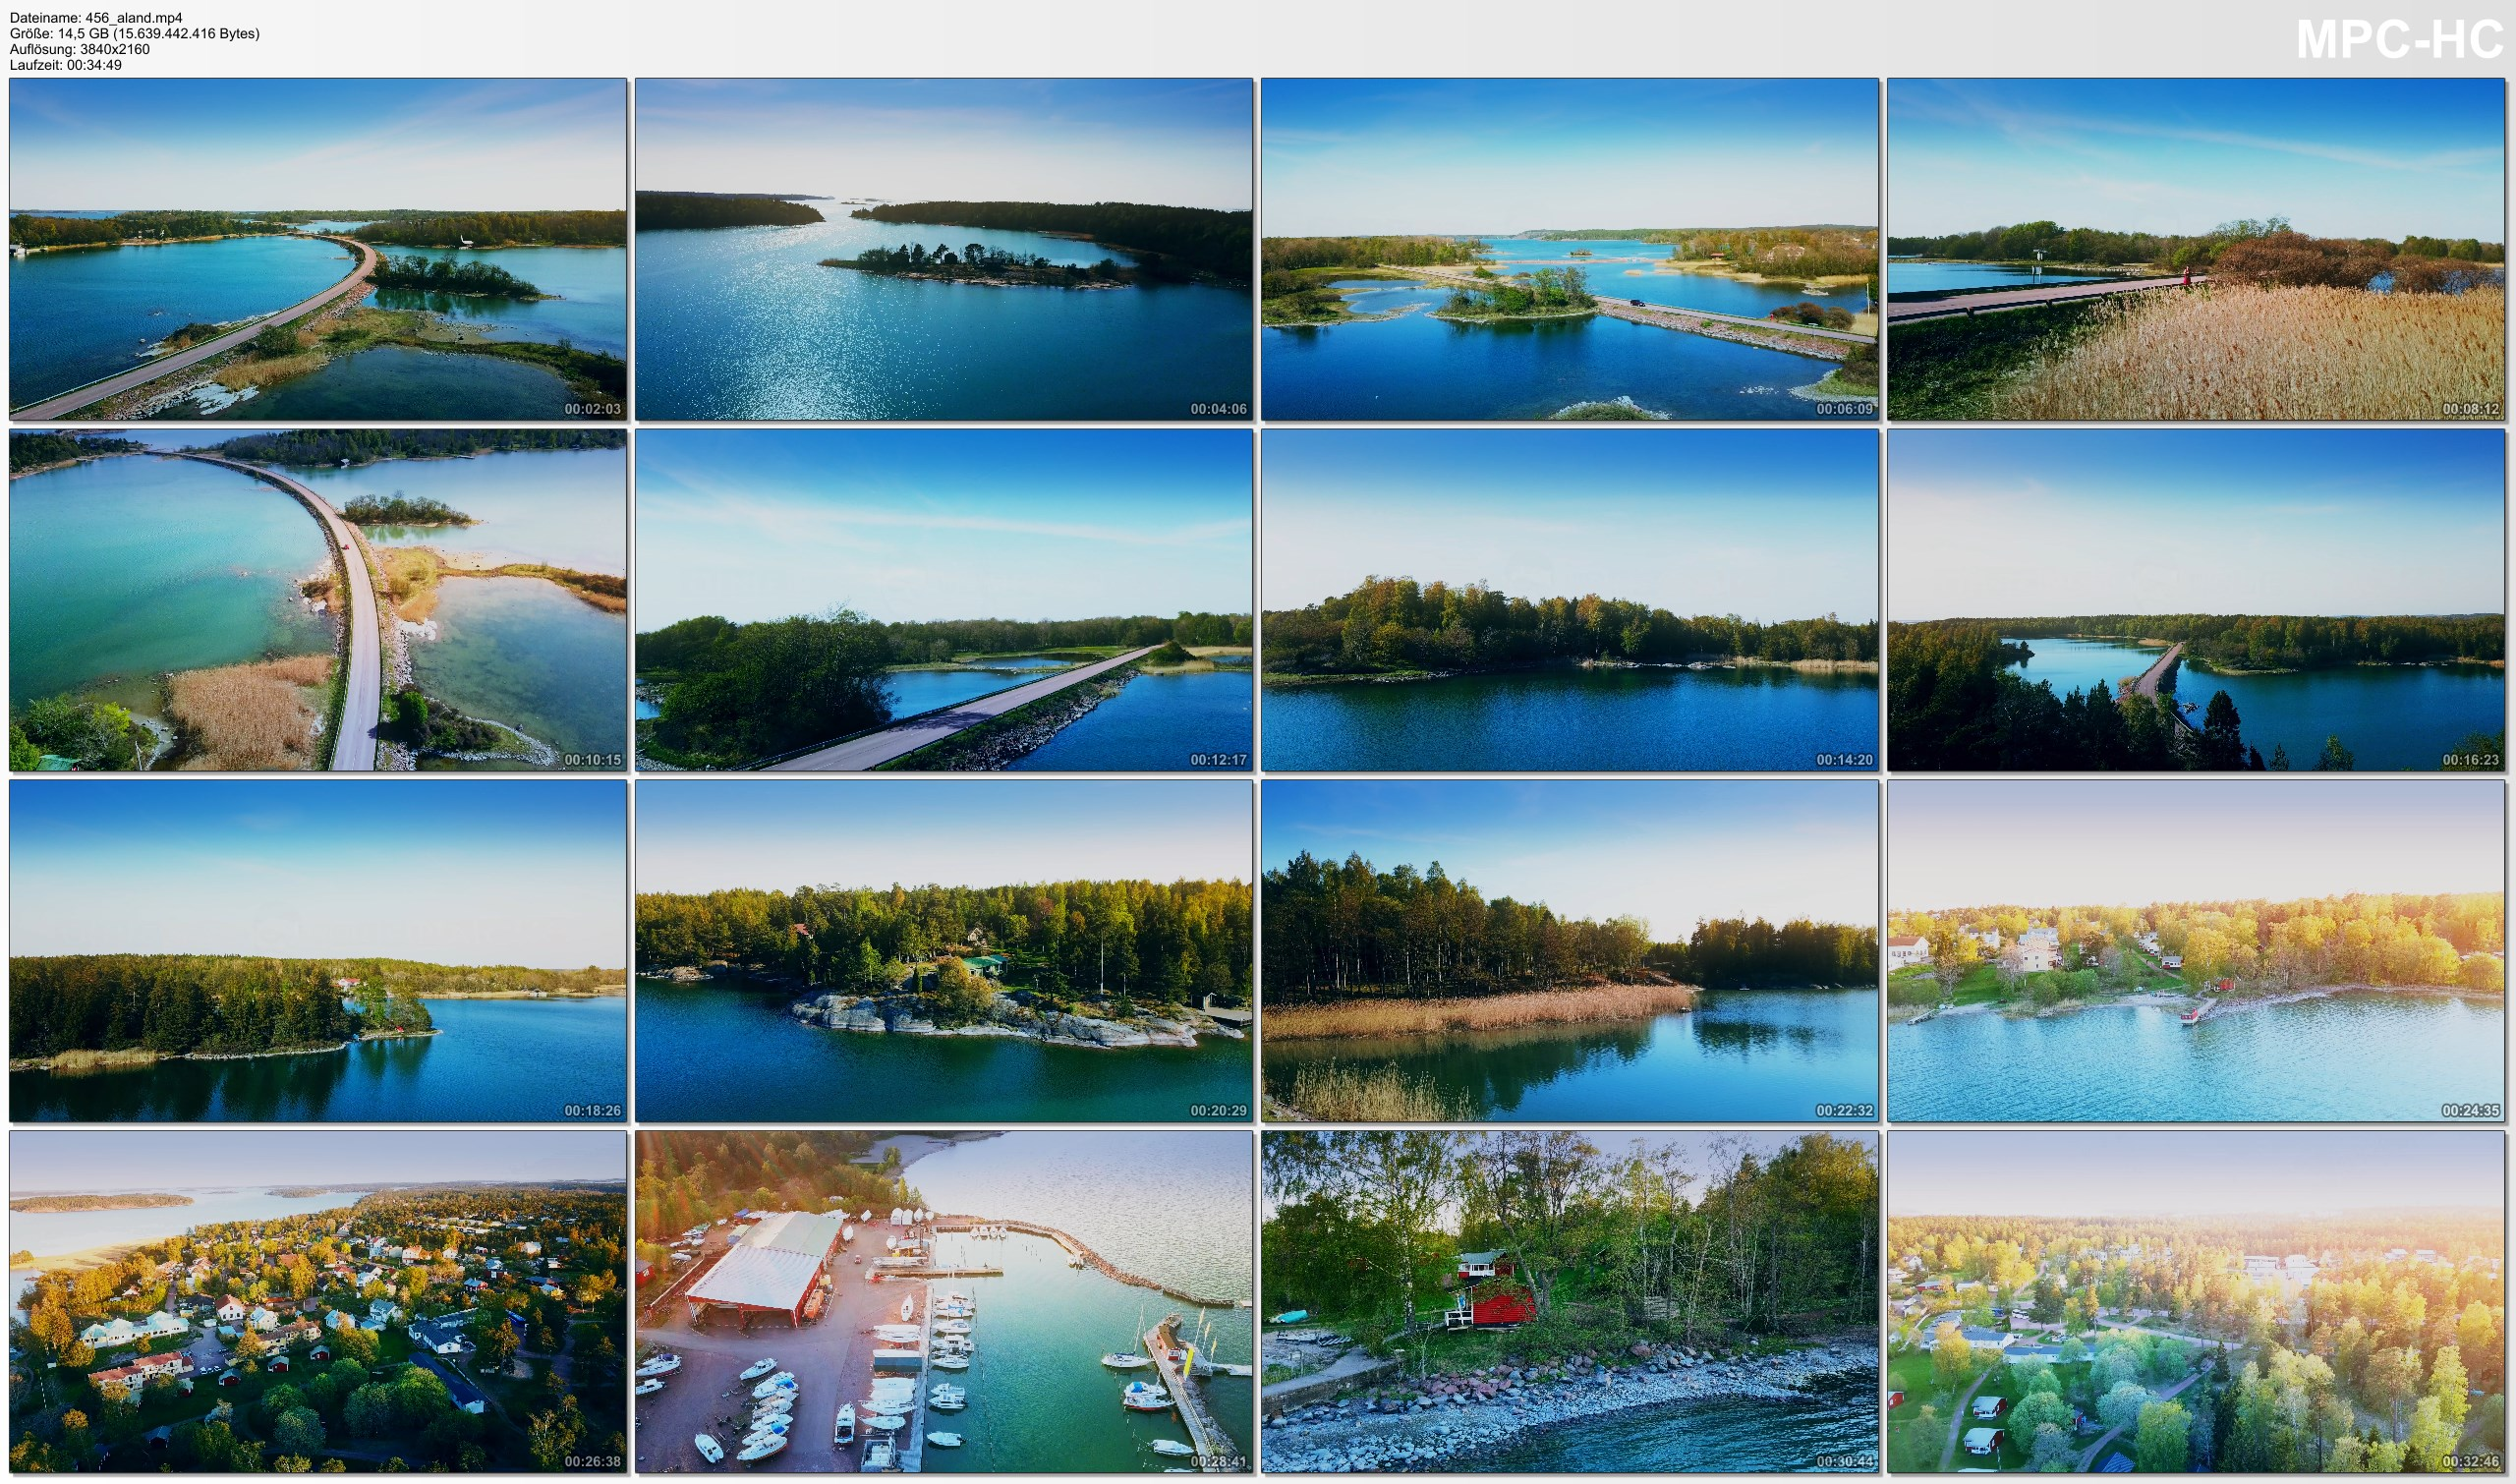 Drone Pictures from Video 【4K】Drone RAW Footage | These are the ALAND ISLANDS 2020 | Mariehamn And More | UltraHD Stock Video